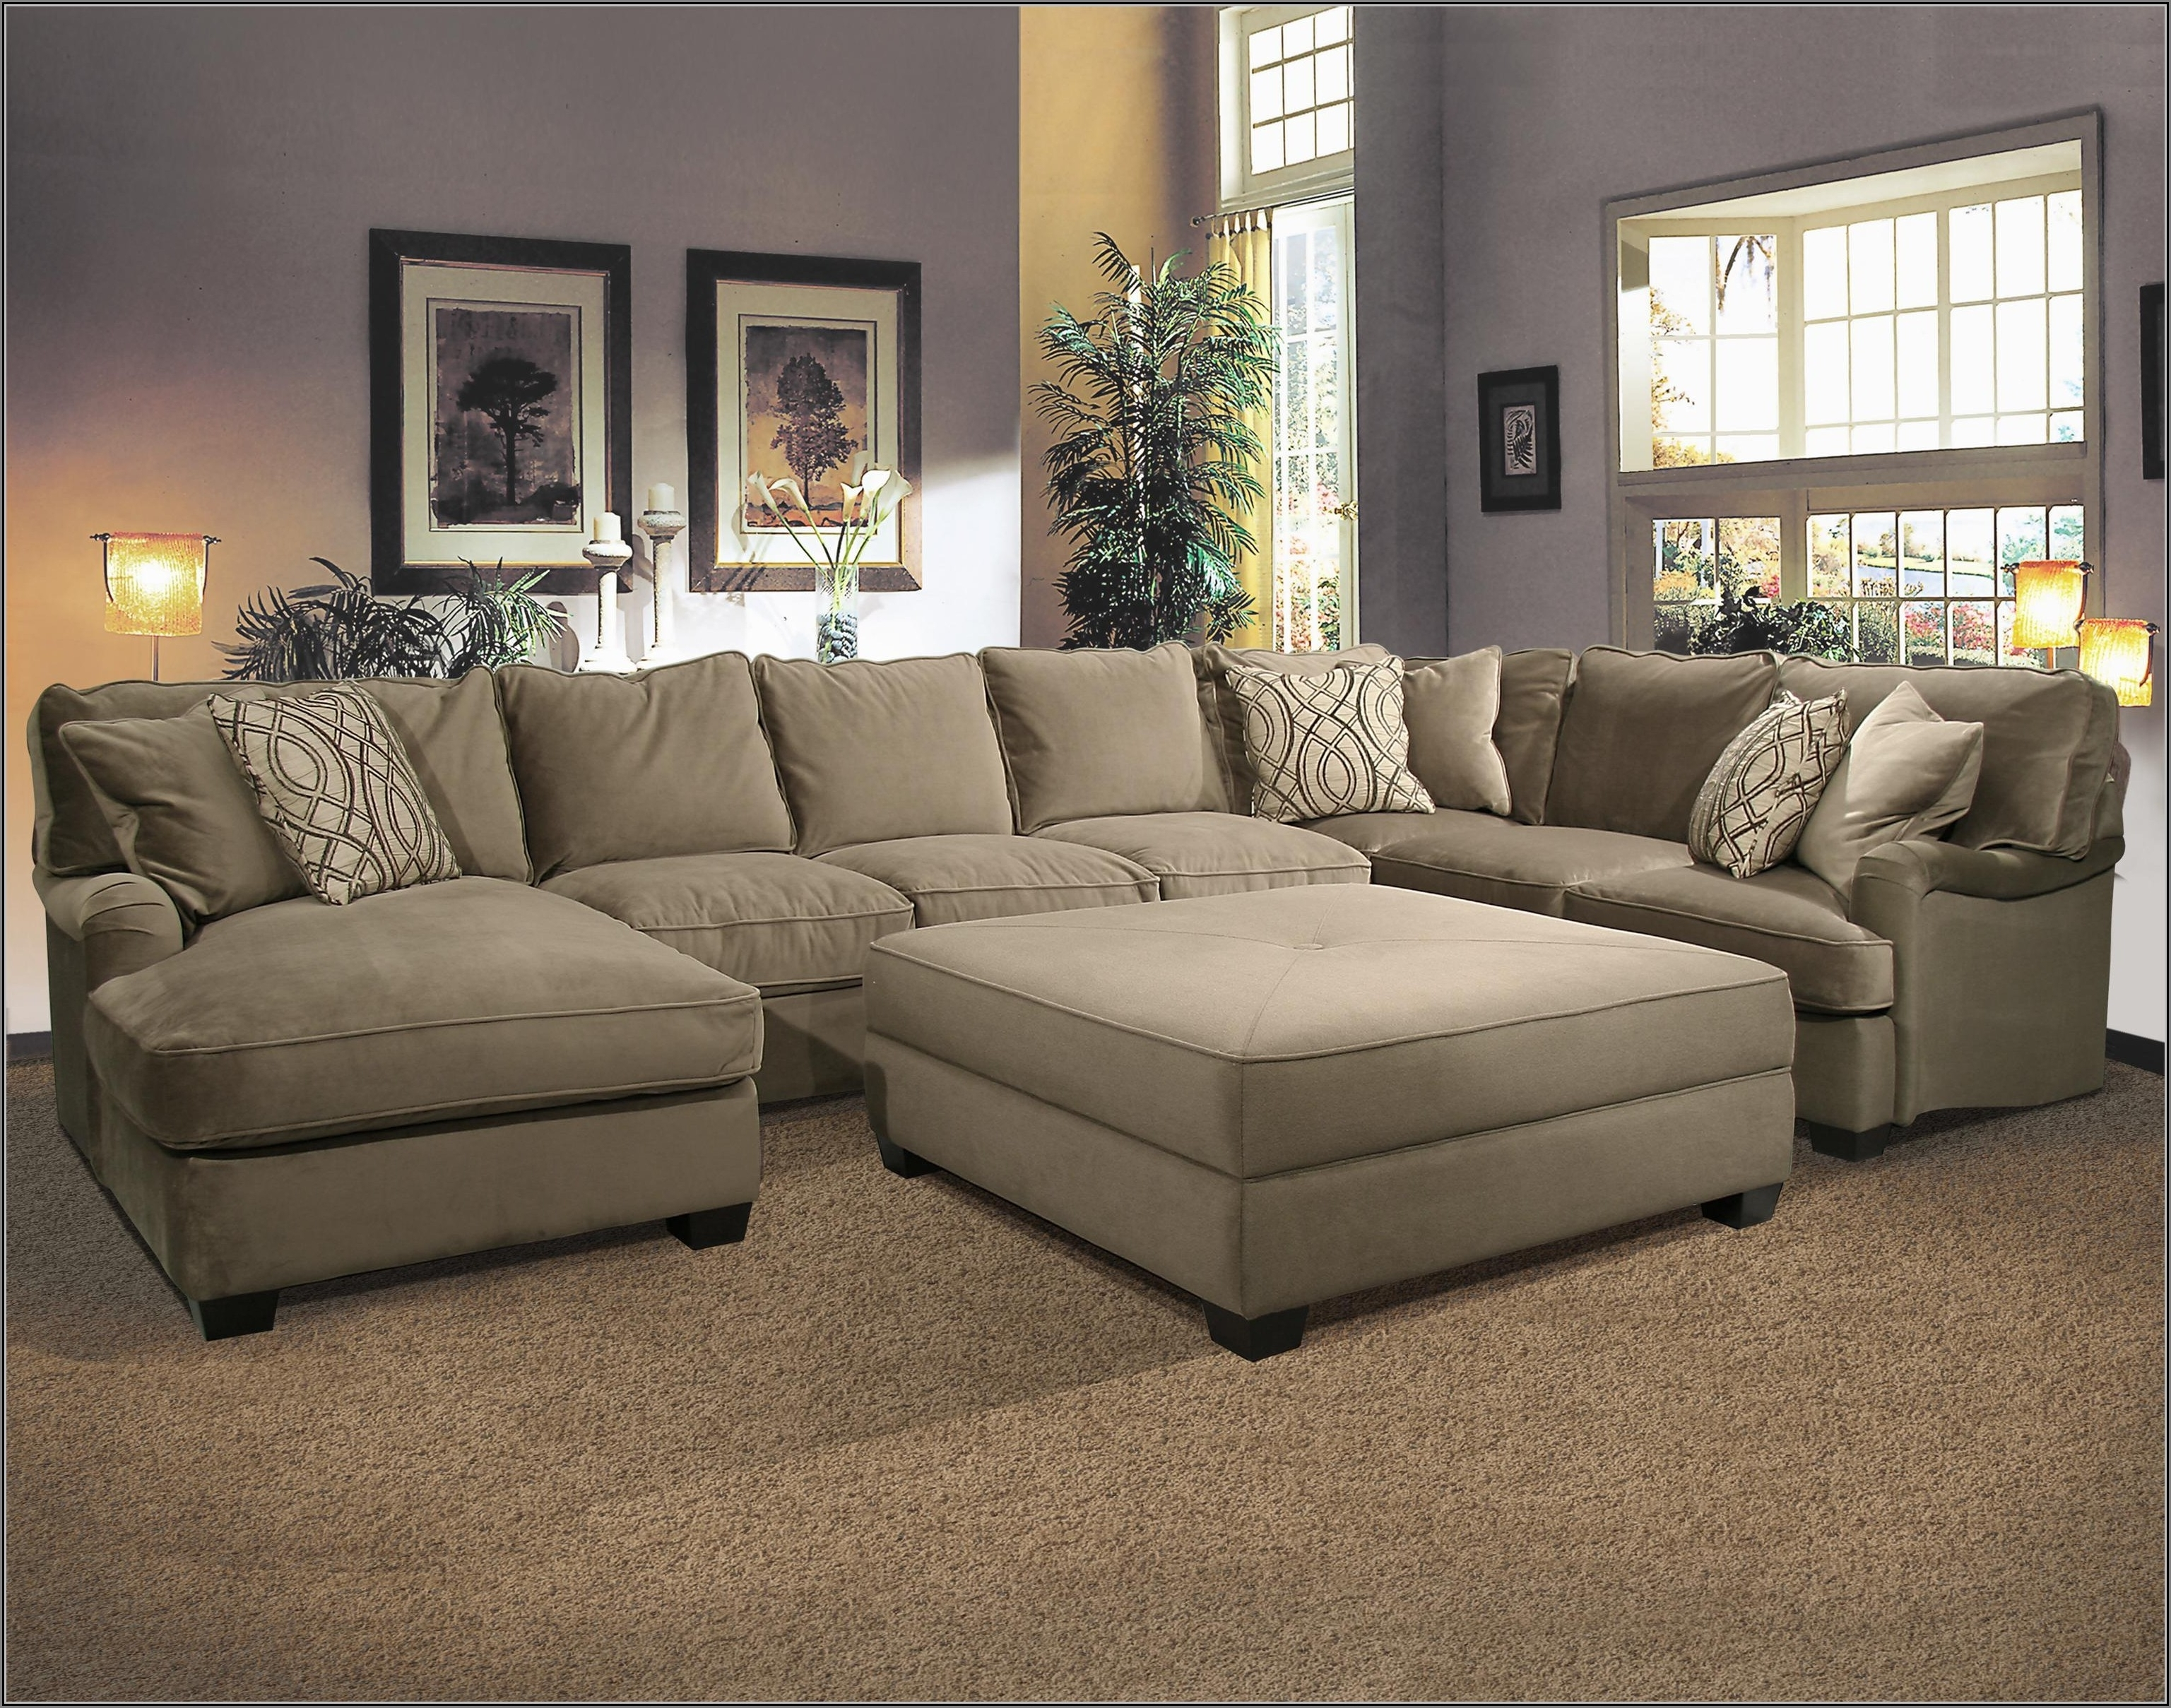 Recent Sectional Sofa With Large Ottoman Hotelsbacau Com Intended For Regarding Small Sectional Sofas With Chaise And Ottoman (Gallery 19 of 20)